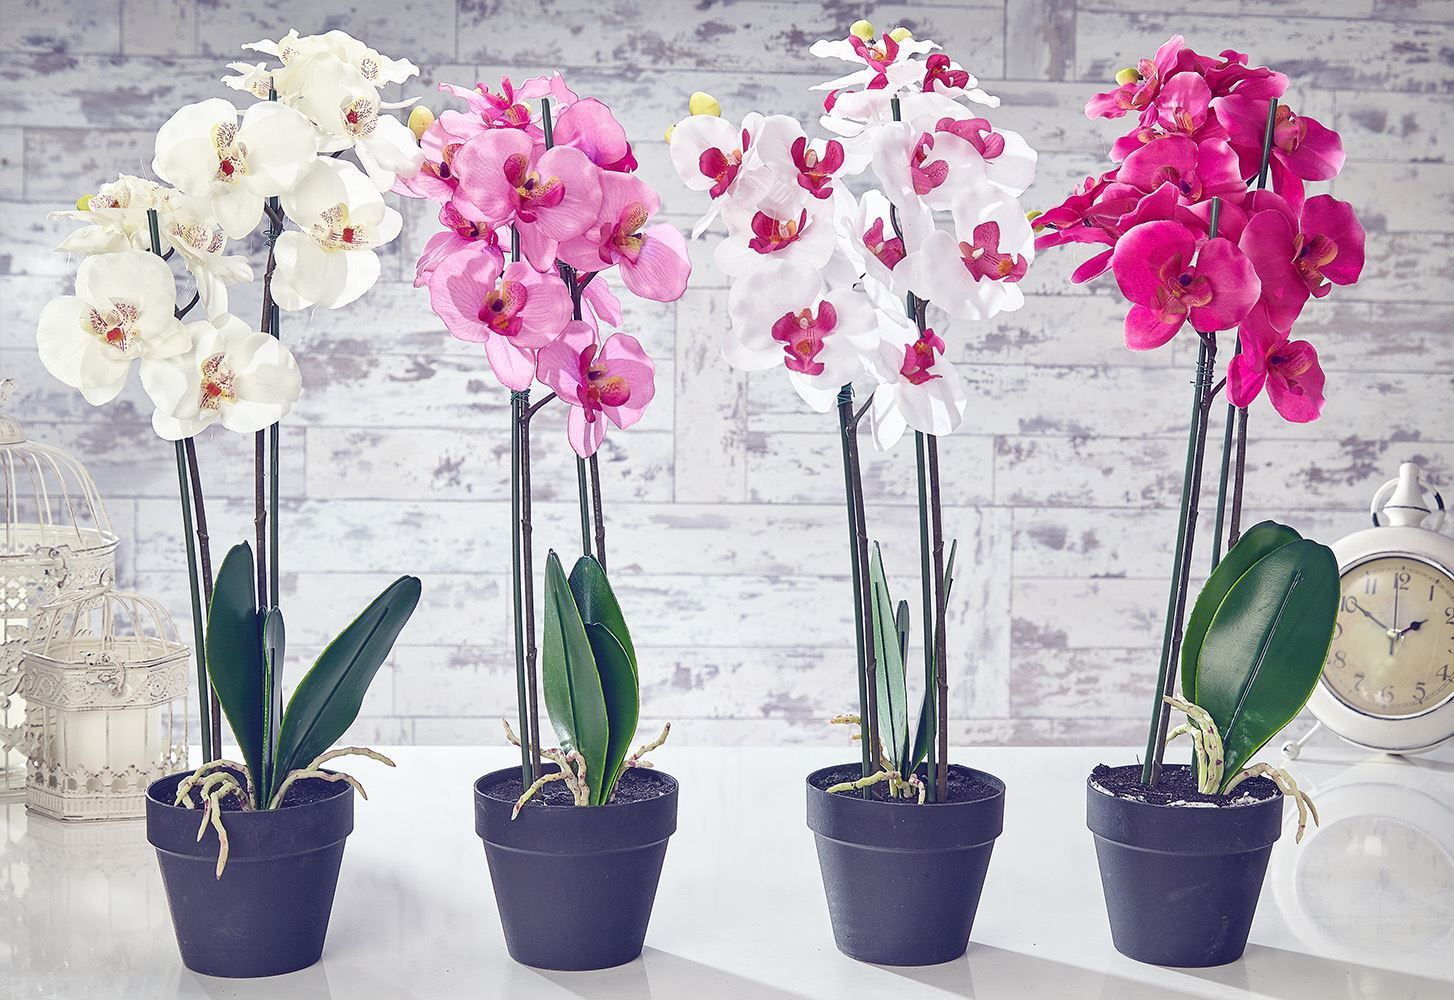 Artificial Orchid Flowers Plants In Pot Home Decor Garden Fuchsia Love Potted Decorative Pink White